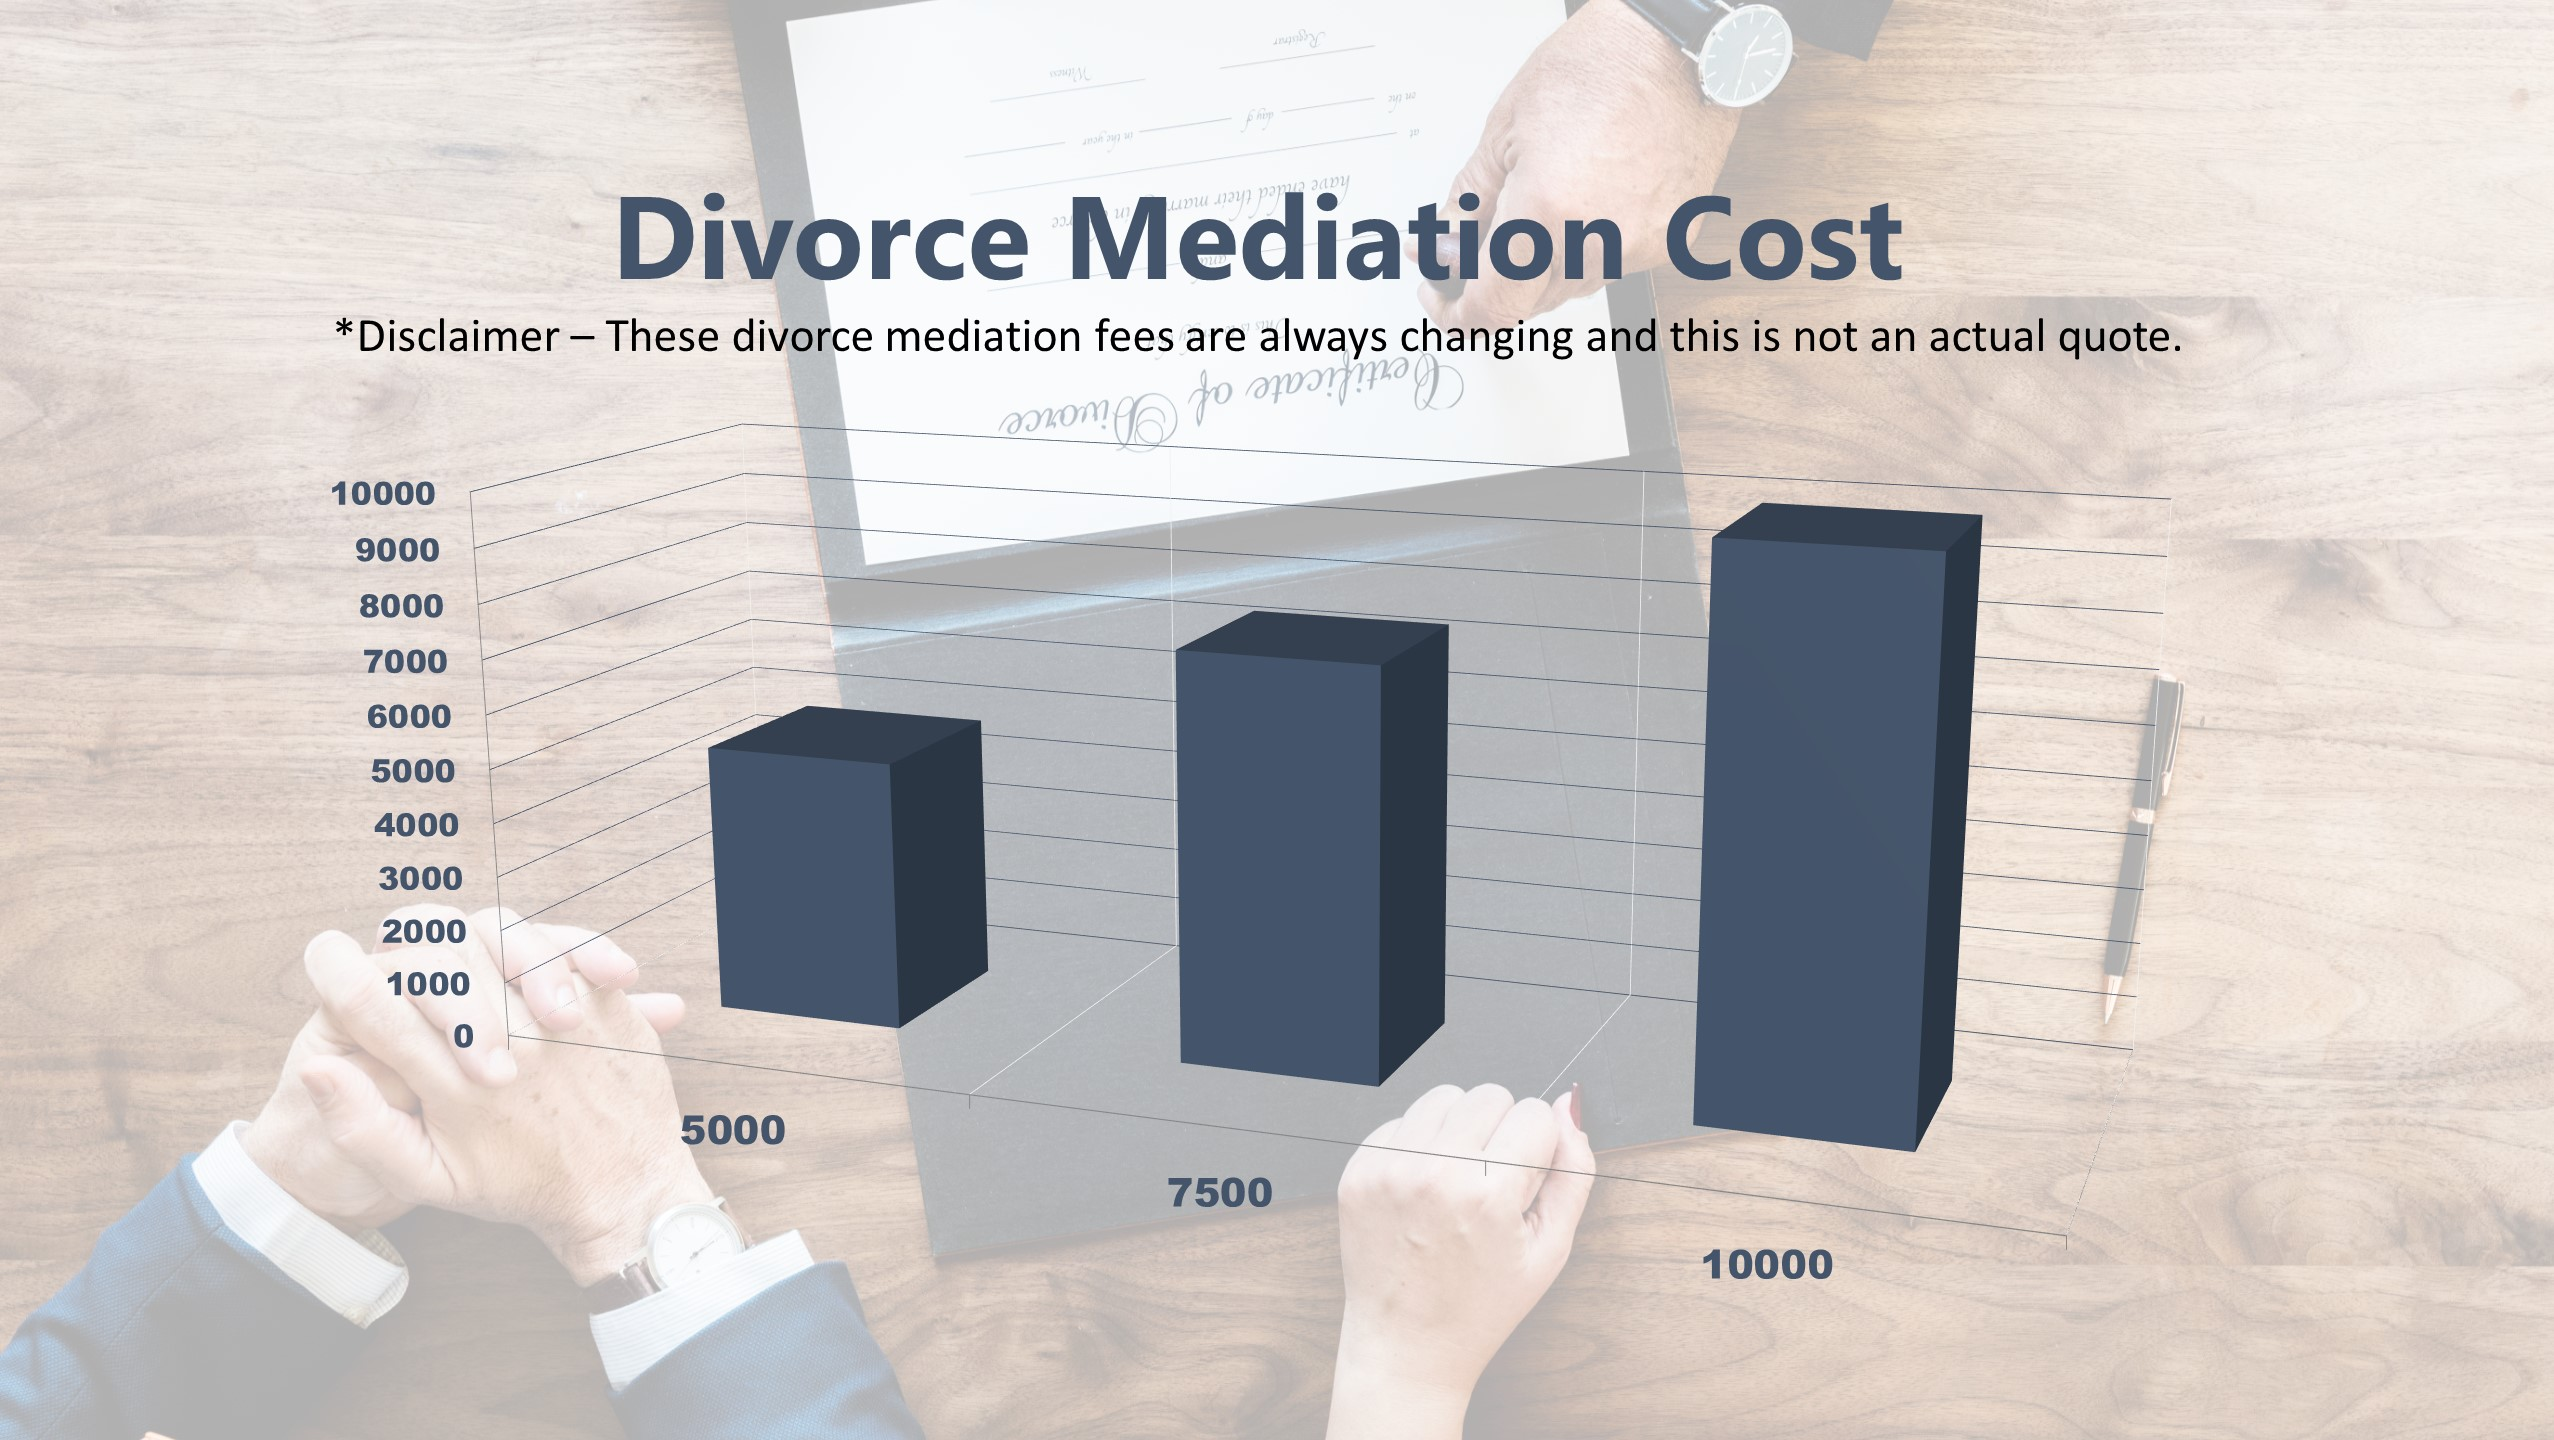 Divorce Mediation Cost